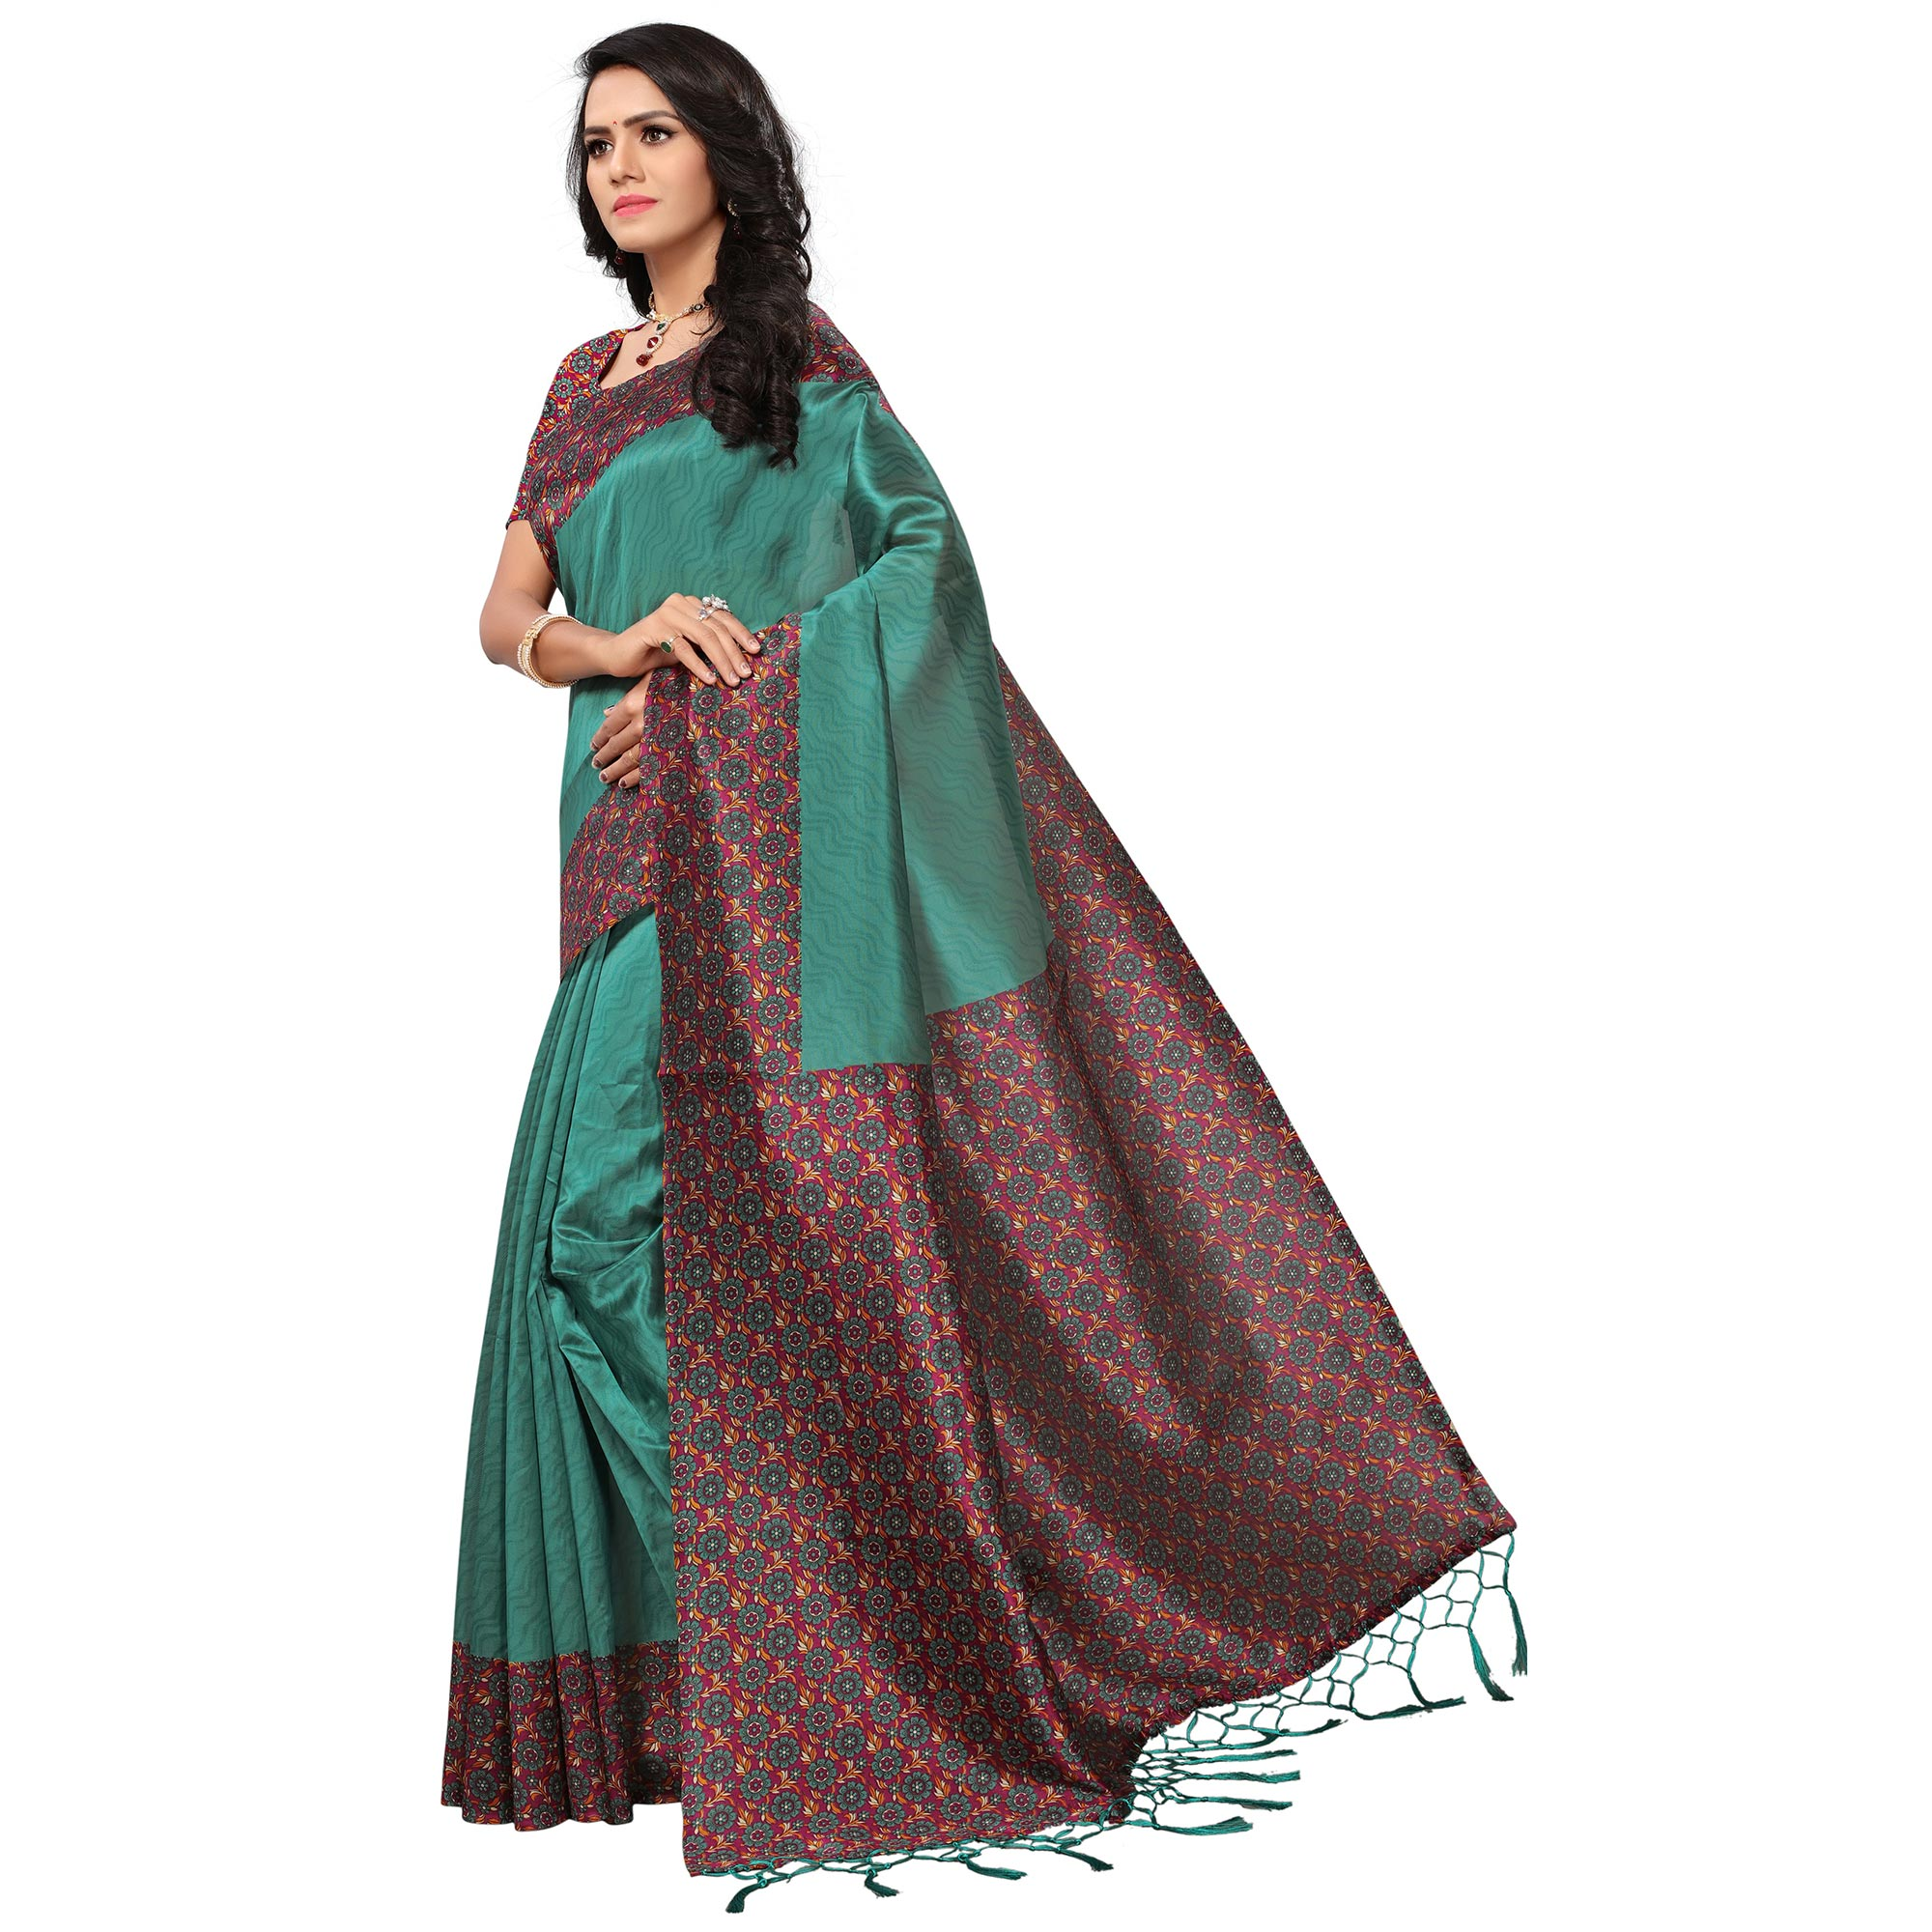 Adorning Turquoise Green Colored Casual Printed Mysore Art Silk Saree